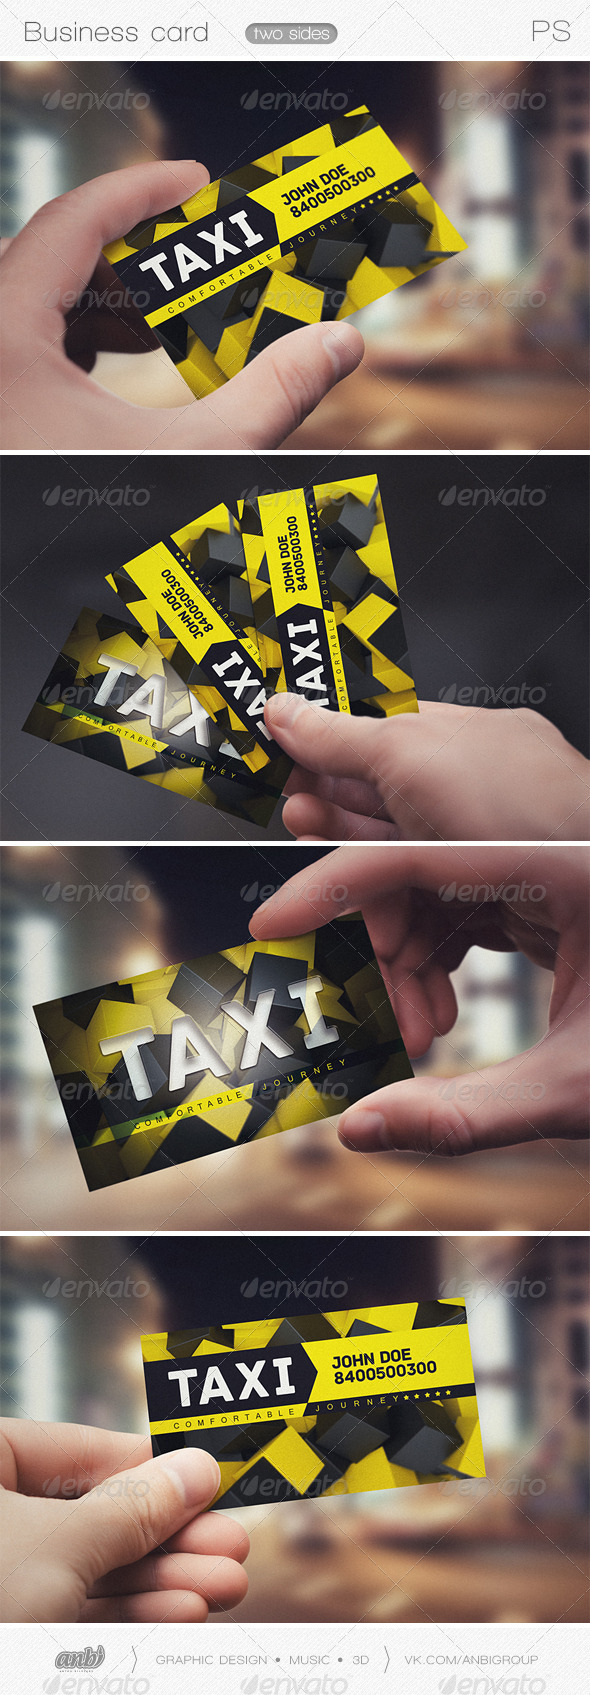 Taxi comfortable journey - Business Cards Print Templates